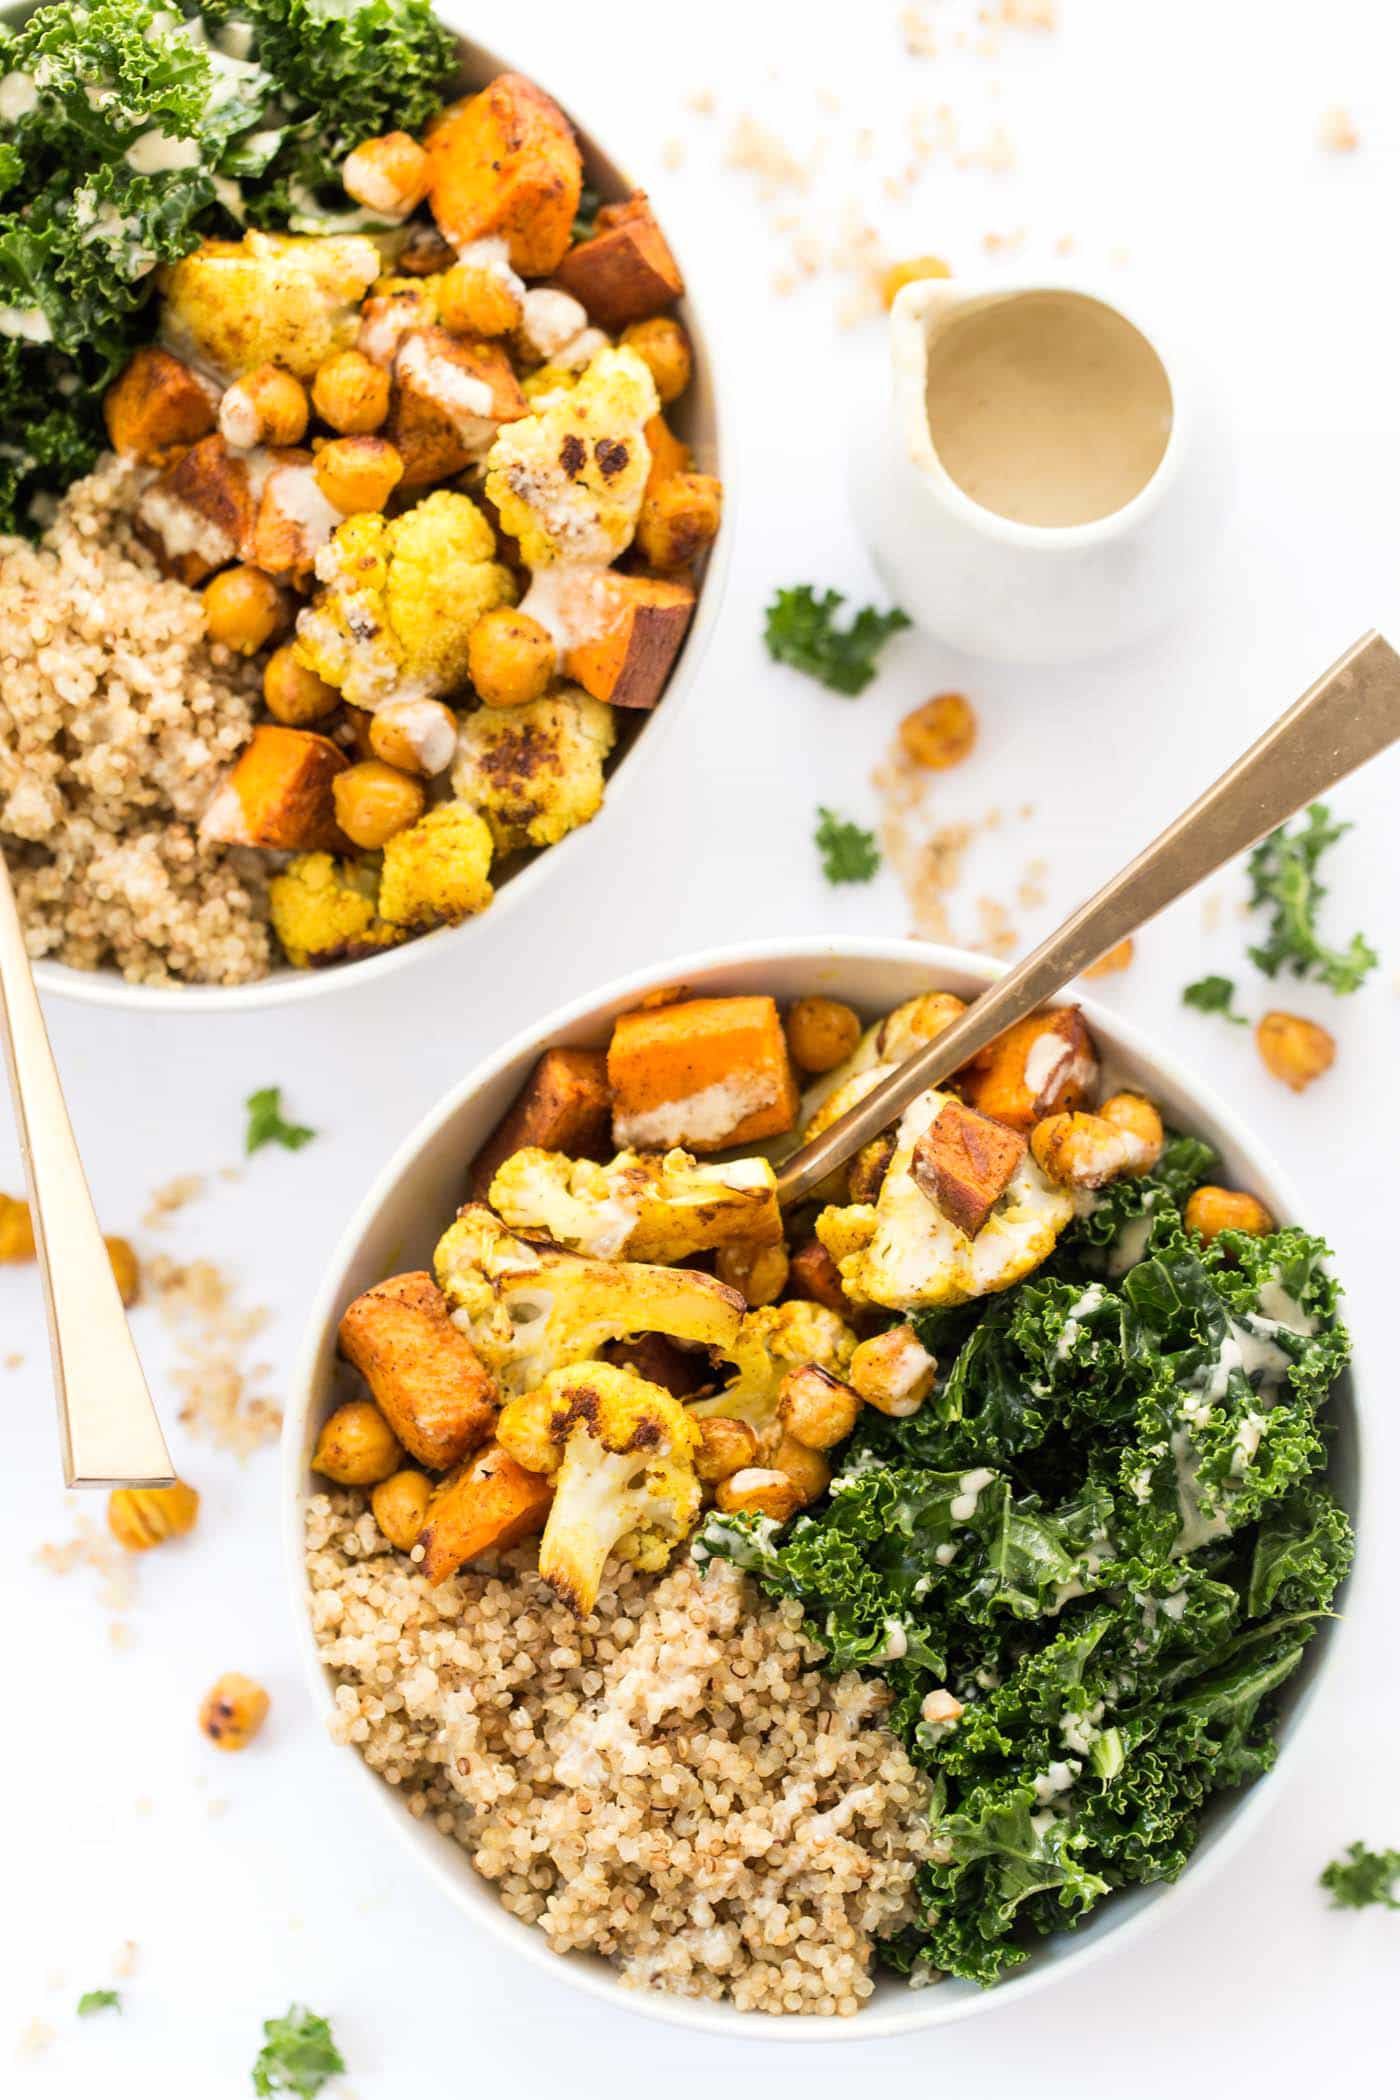 Curry Roasted Vegetable Quinoa Bowls - Simply Quinoa